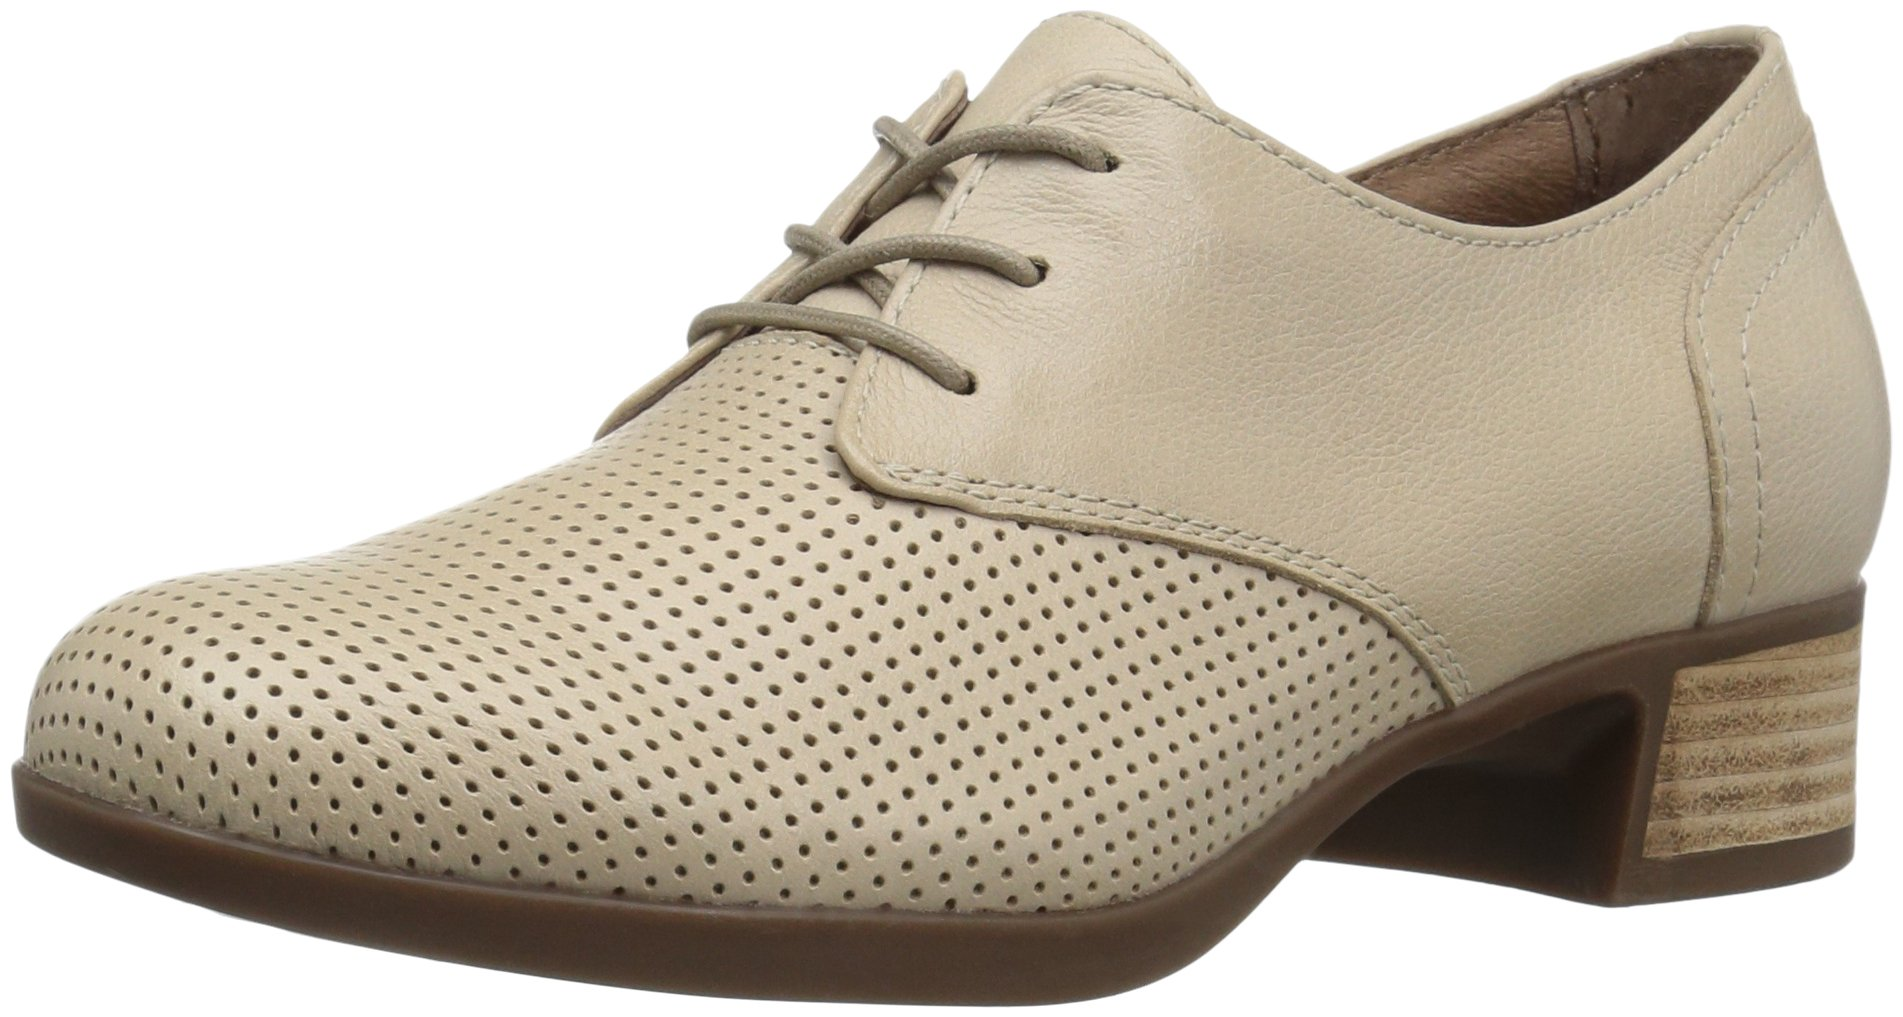 Dansko Women's Louise Oxford, Sand Burnished Nappa, 37 EU/6.5-7 M US